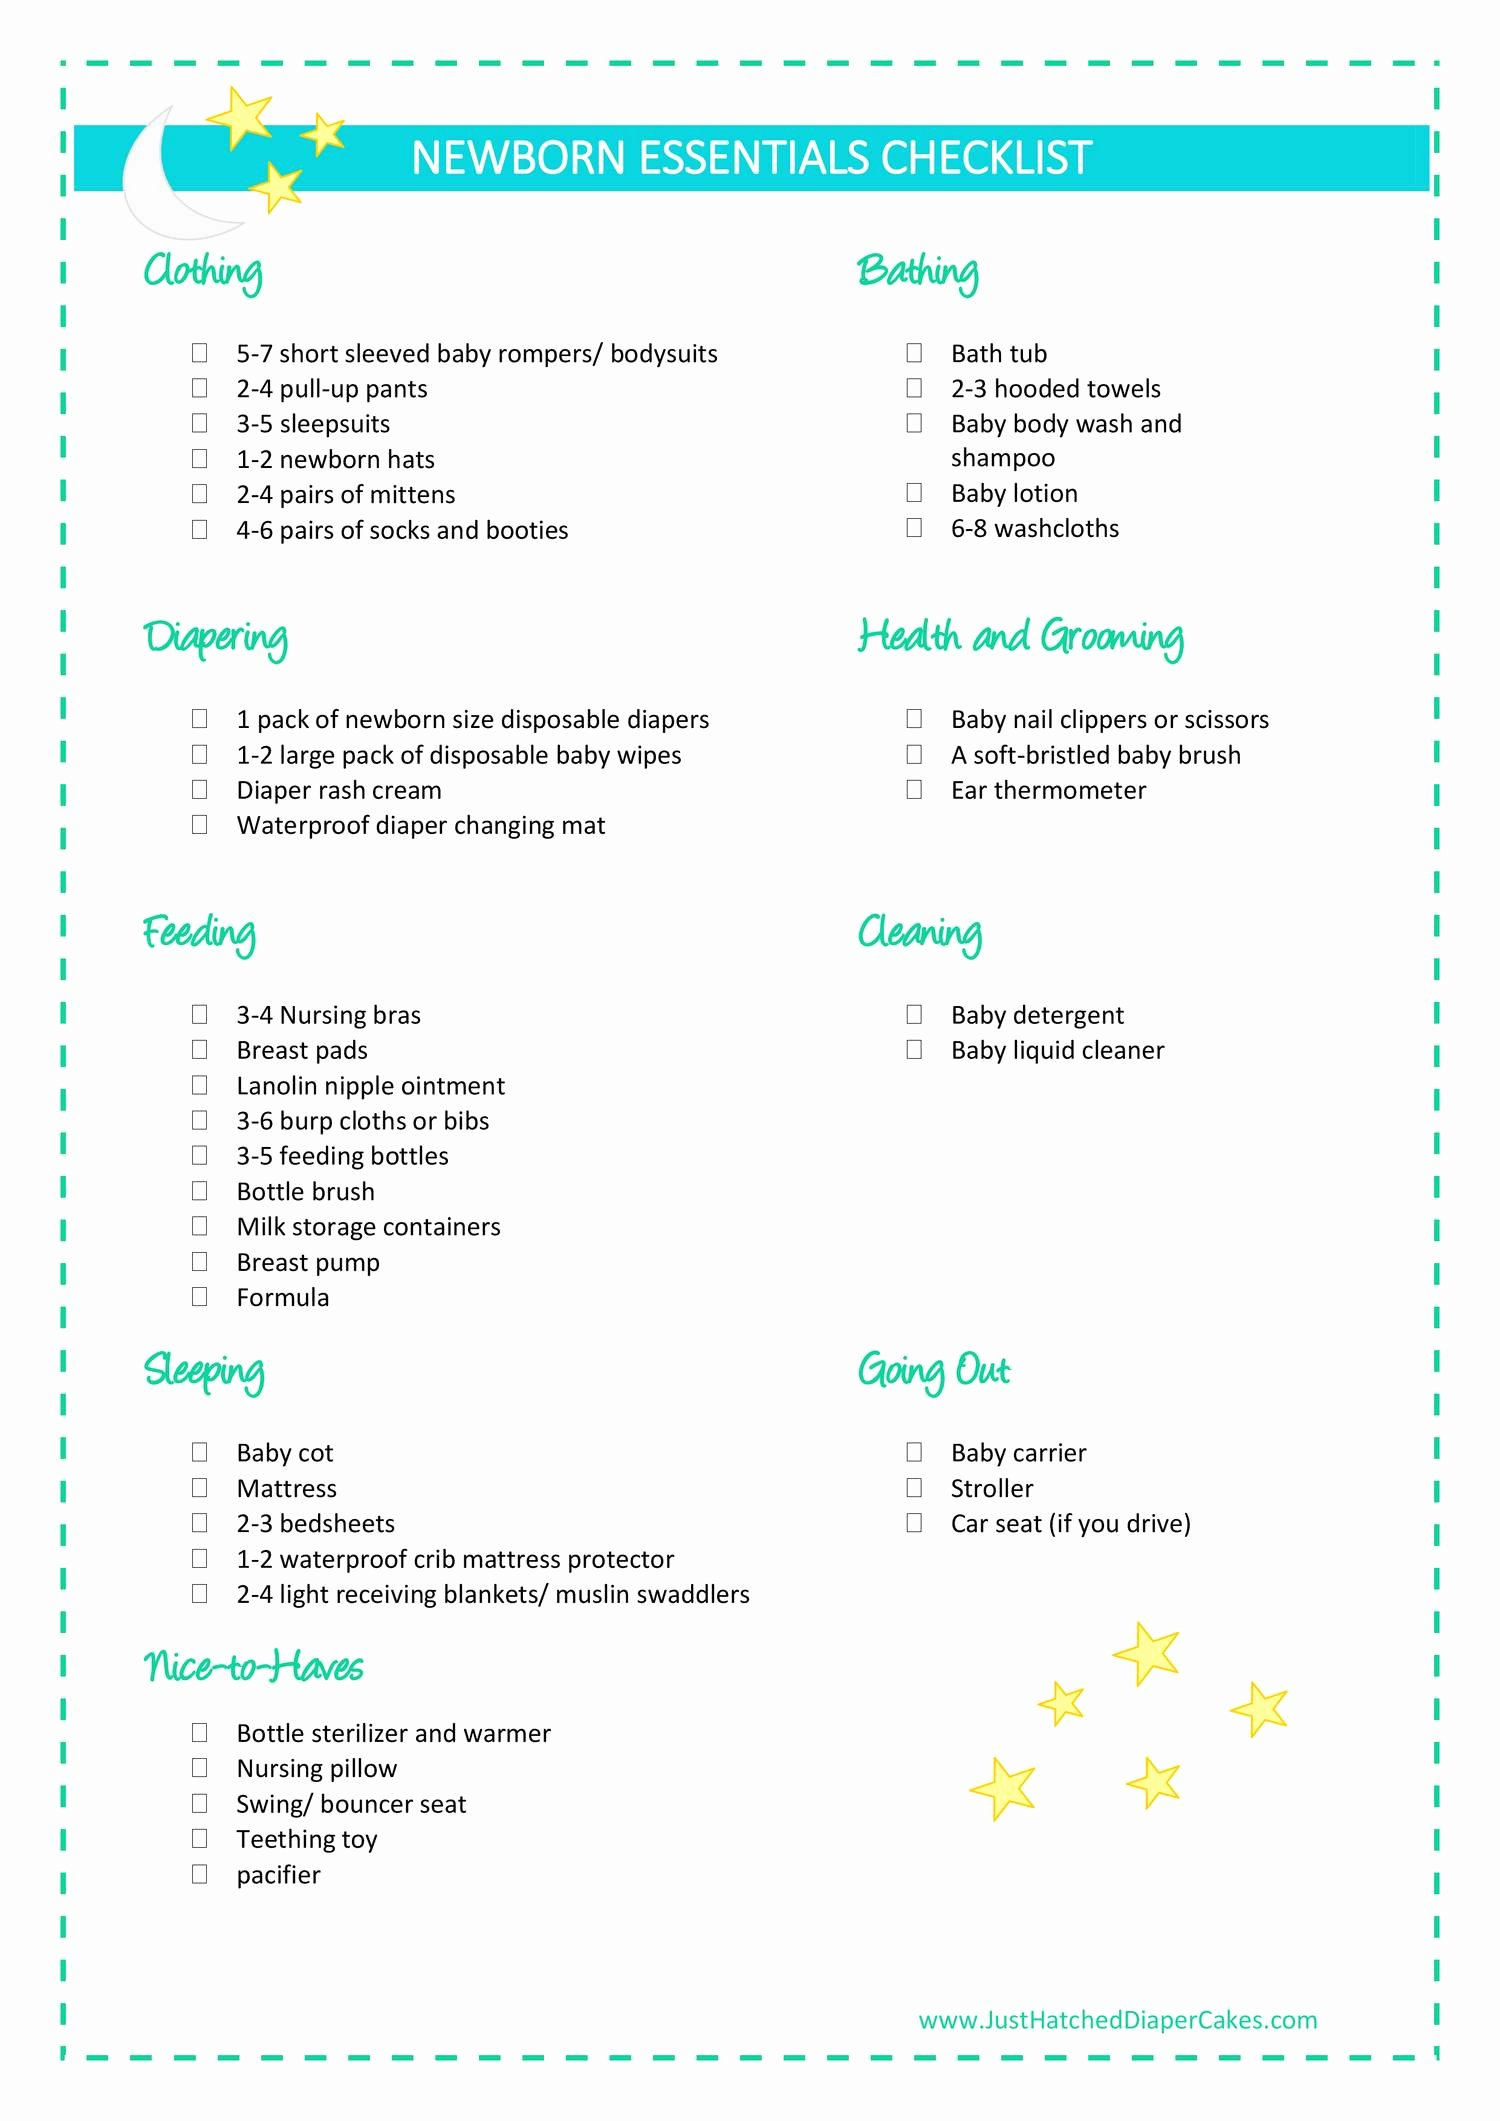 Newborn Essentials Checklist New Newborn Essentials Checklist Pdf